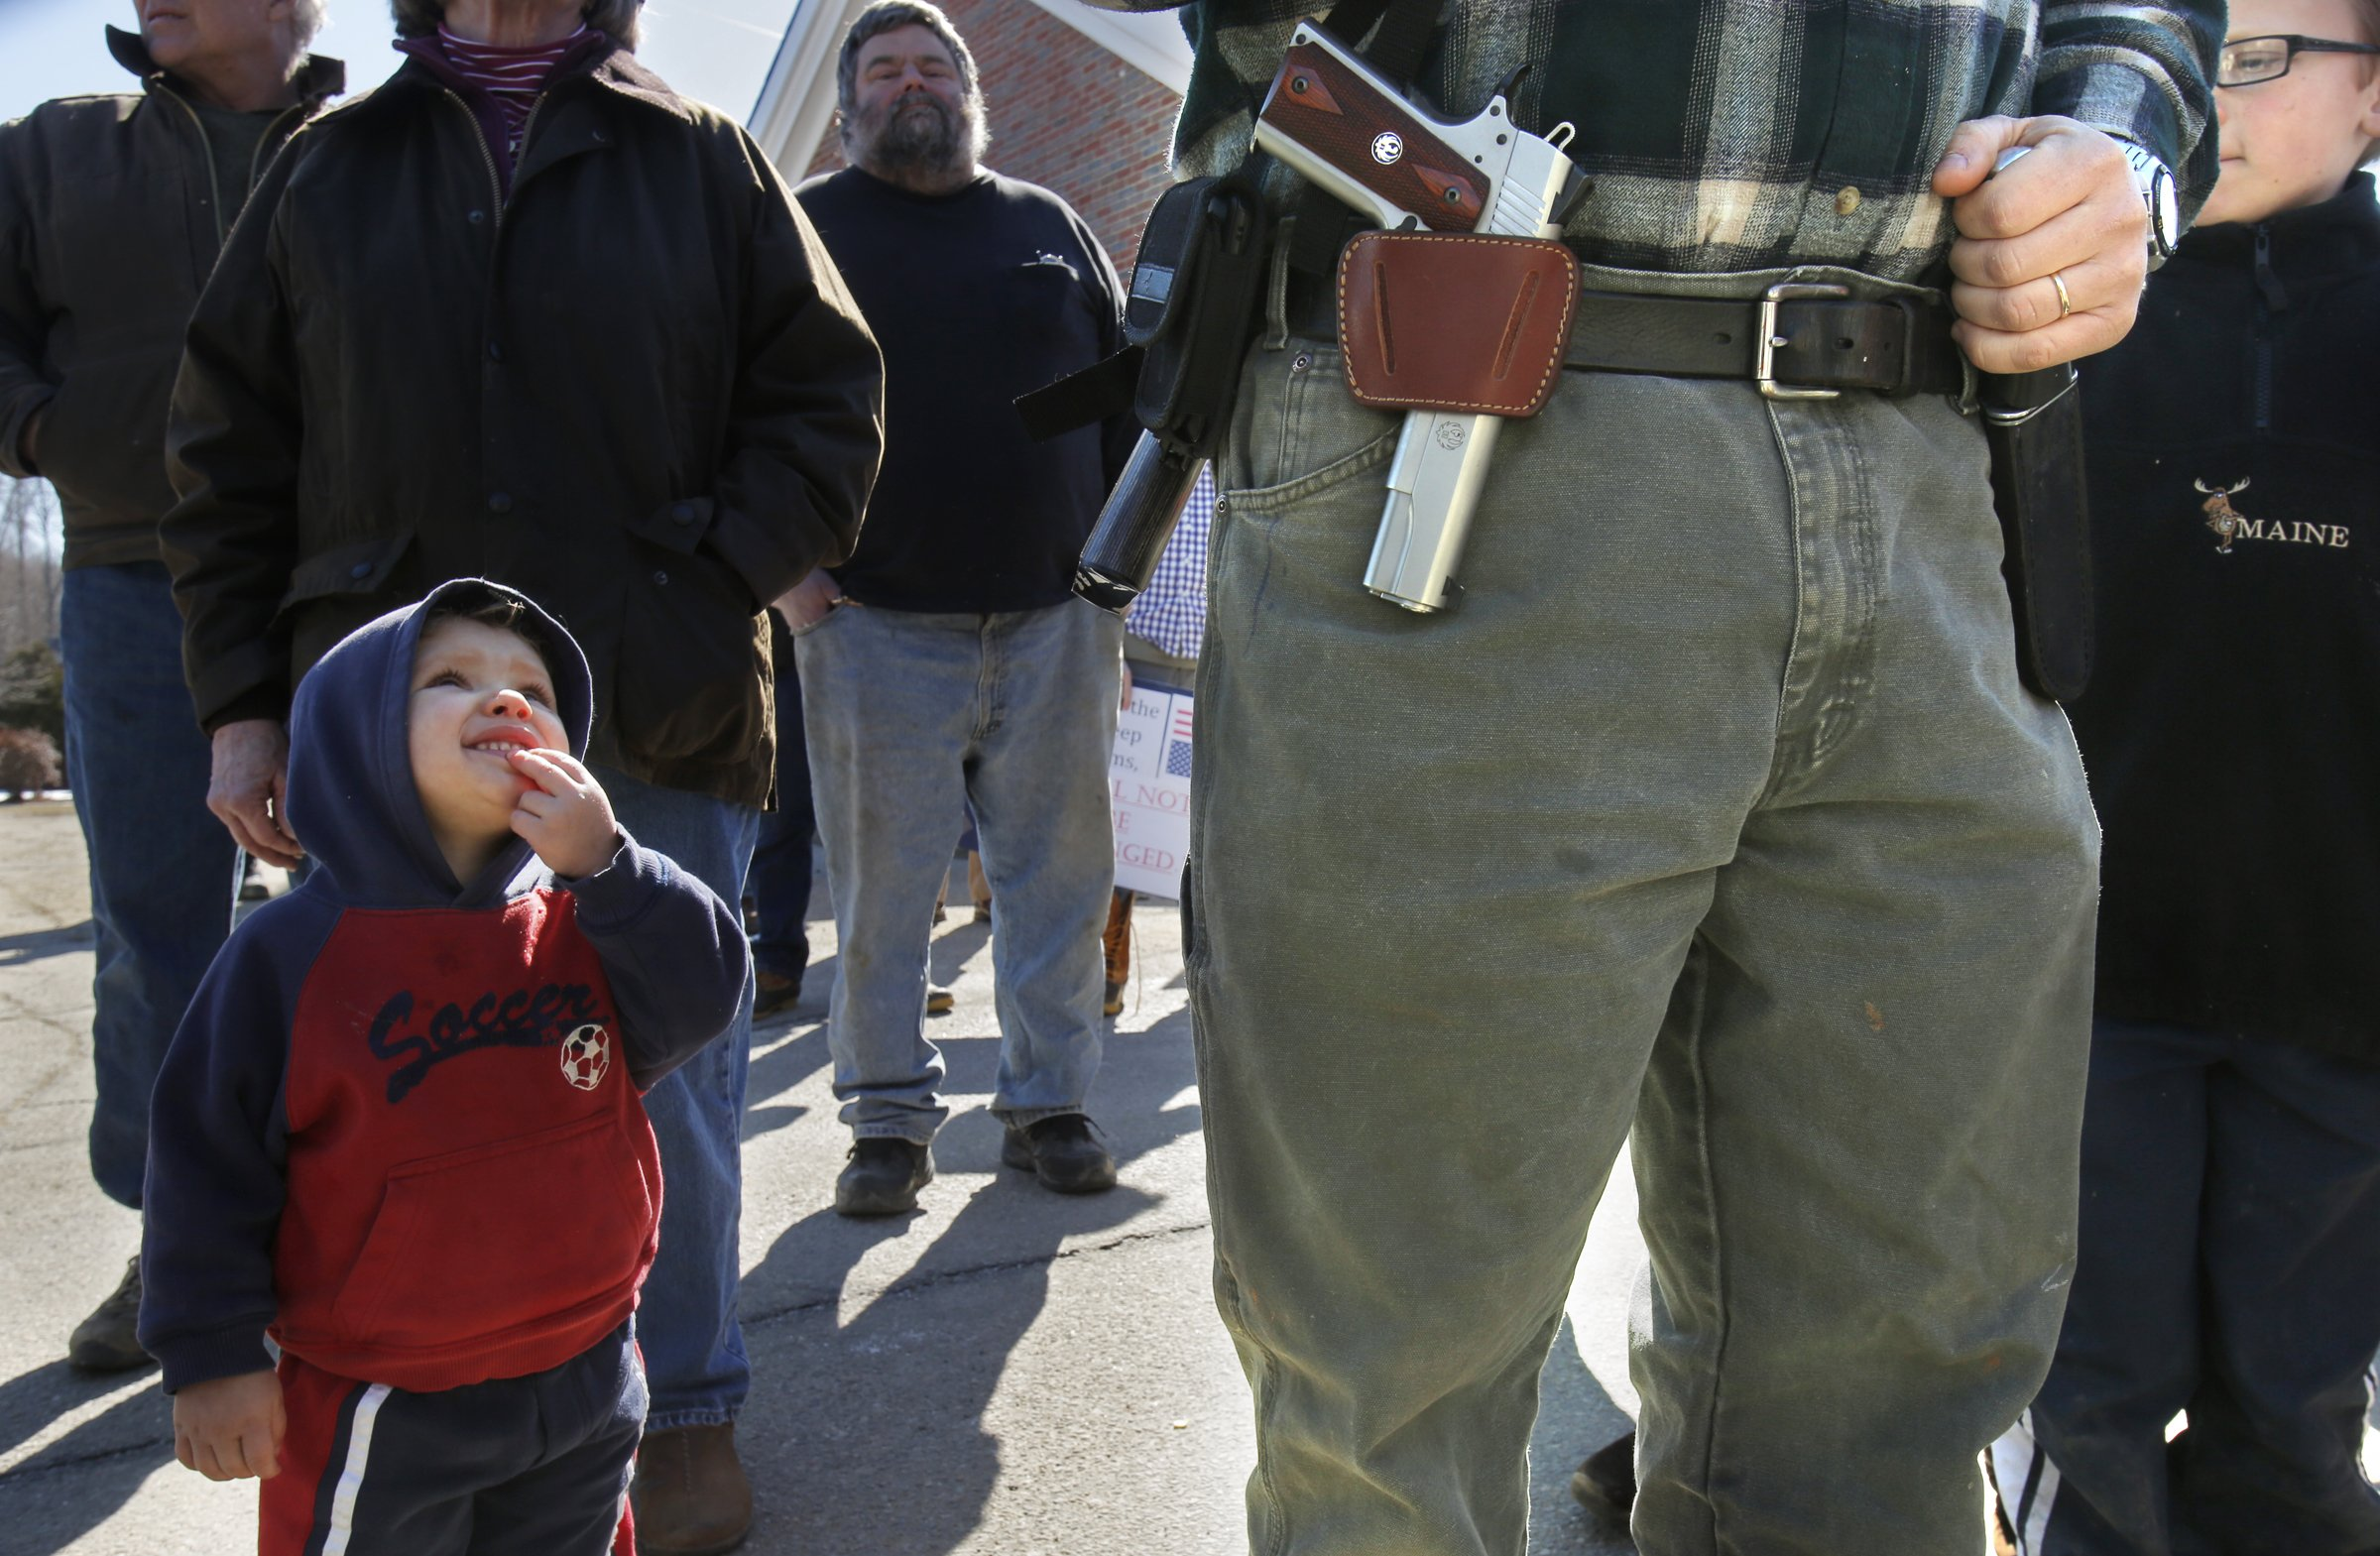 Samson Hiltz, 2, looks up to his father Jeremy Hiltz of Chelsea while the two attend a rally protest